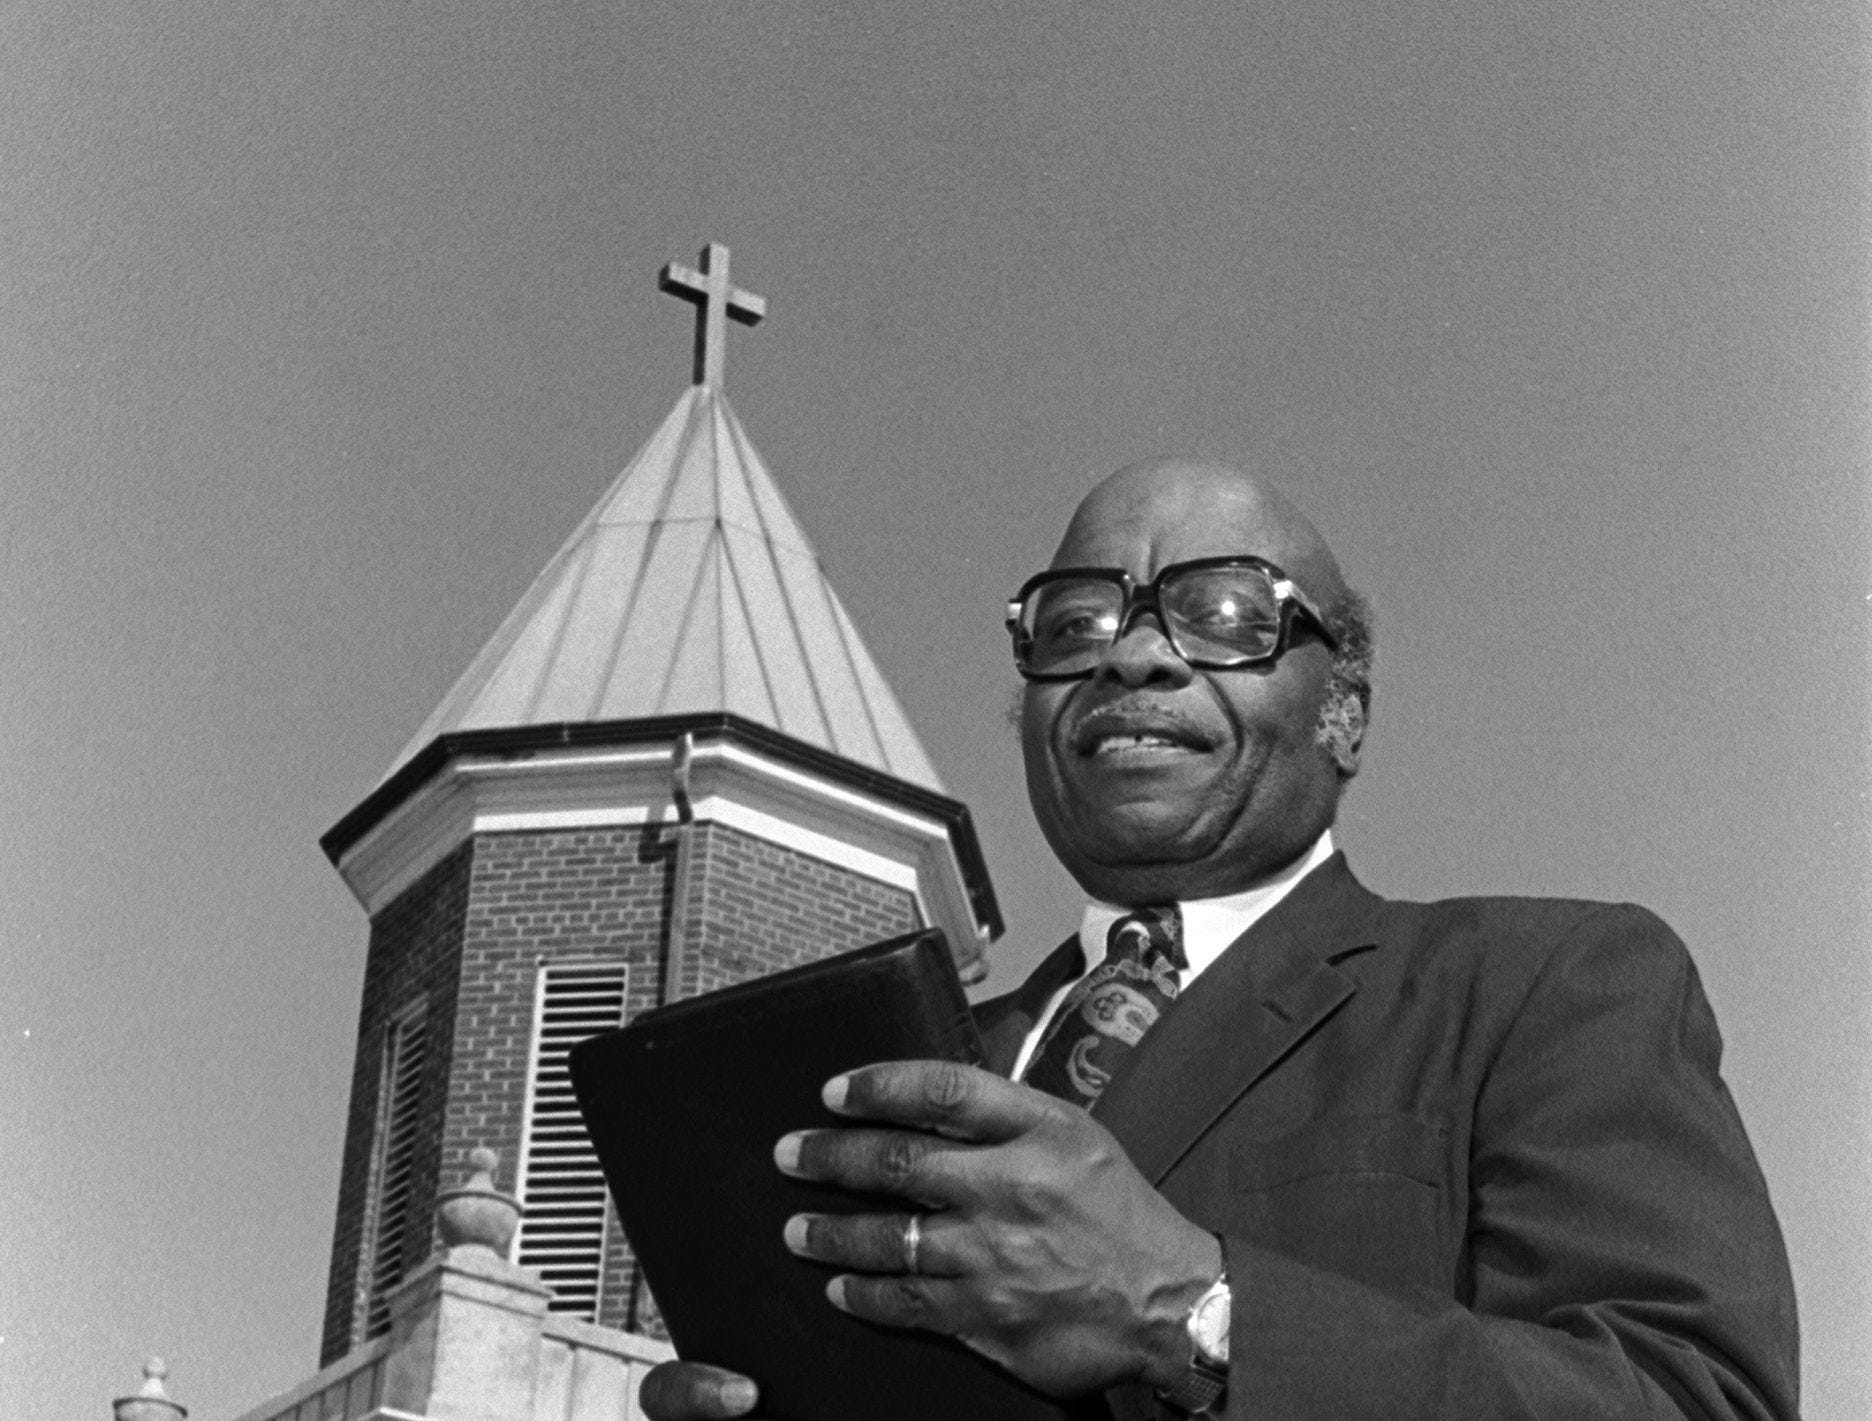 Rev. Fred C. Lofton, shown in February 1984, has been pastor of Metropolitan Baptist Church since 1972. Born in North Carolina, he was educated at Morehouse College, the University of Southern California and Emory University, where he received a doctorate in sacred theology. He has been active in ecumenical and social programs with the Metropolitan Inter-Faith Association.